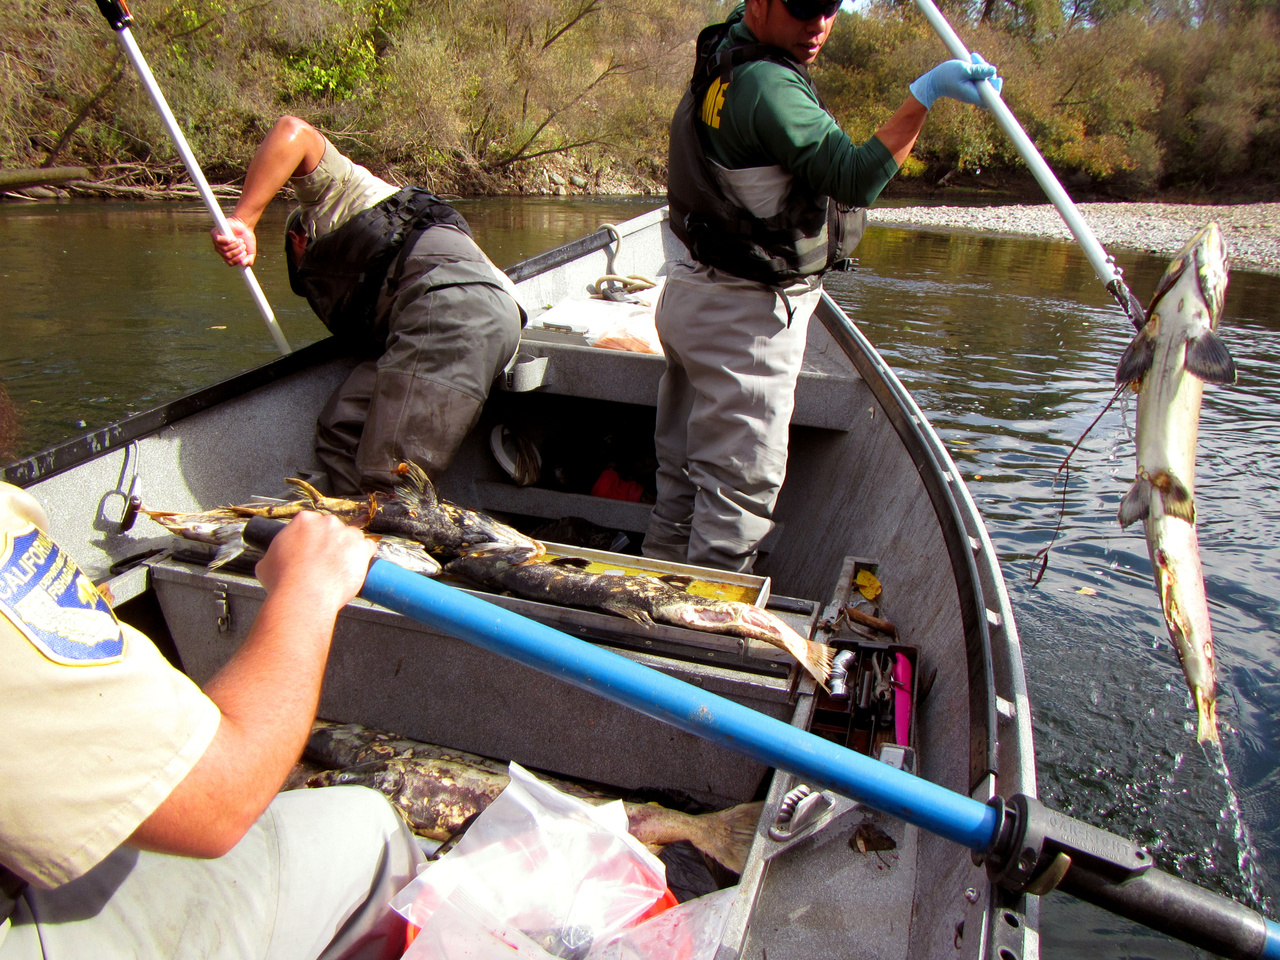 California Department of Fish and Wildlife biologists collect salmon carcasses for scientific study